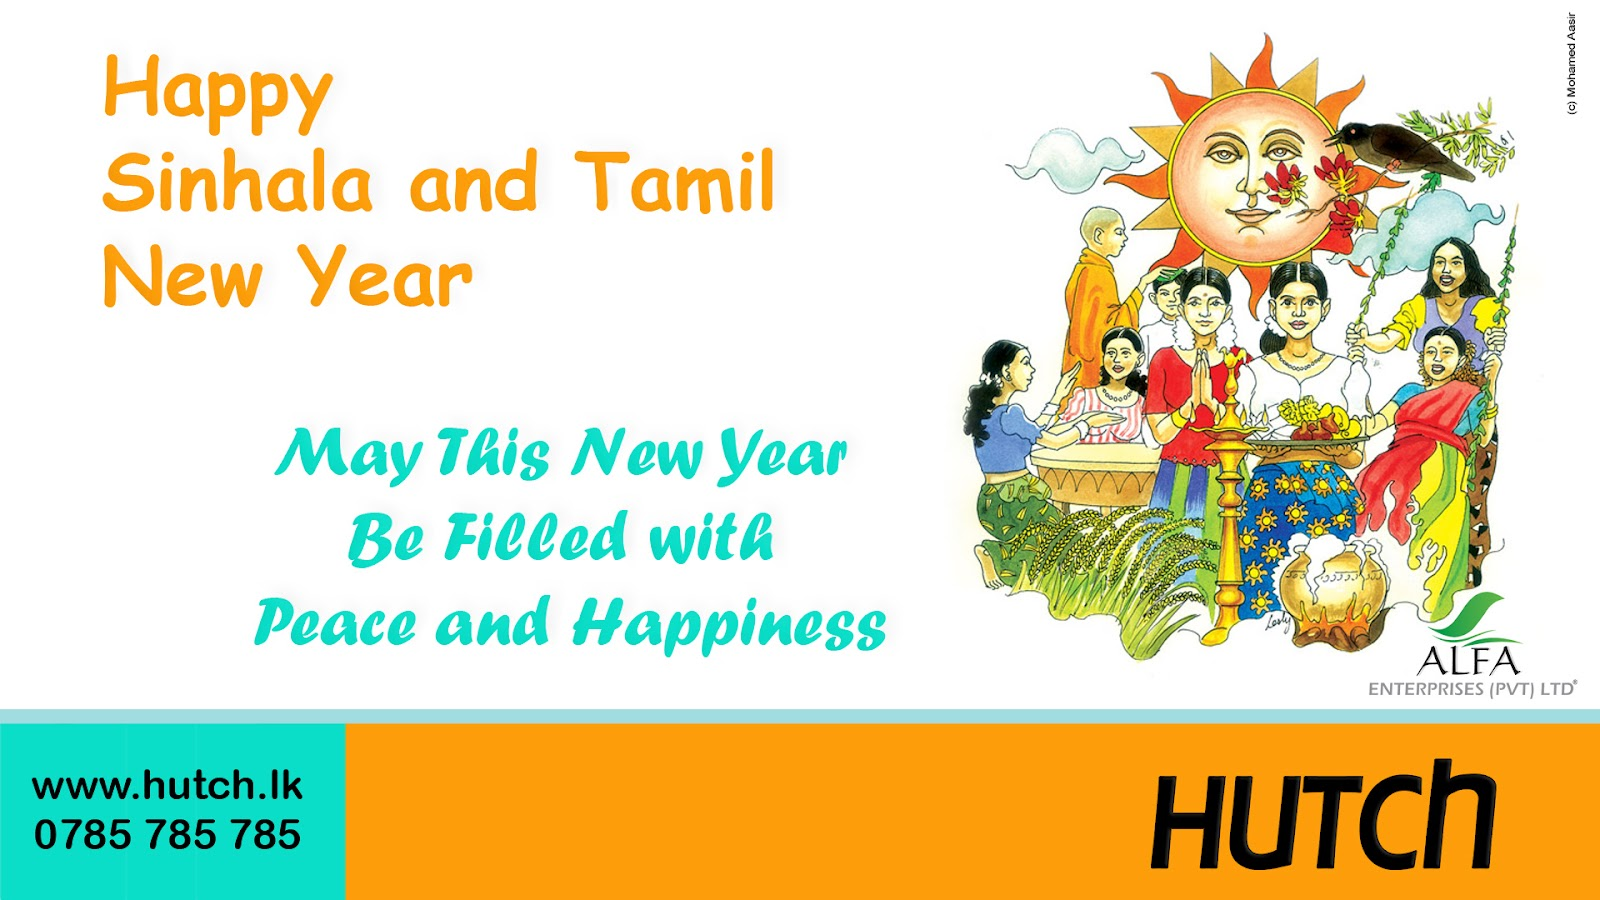 Download Sinhala And Tamil New Year Pictures  Kootationcom